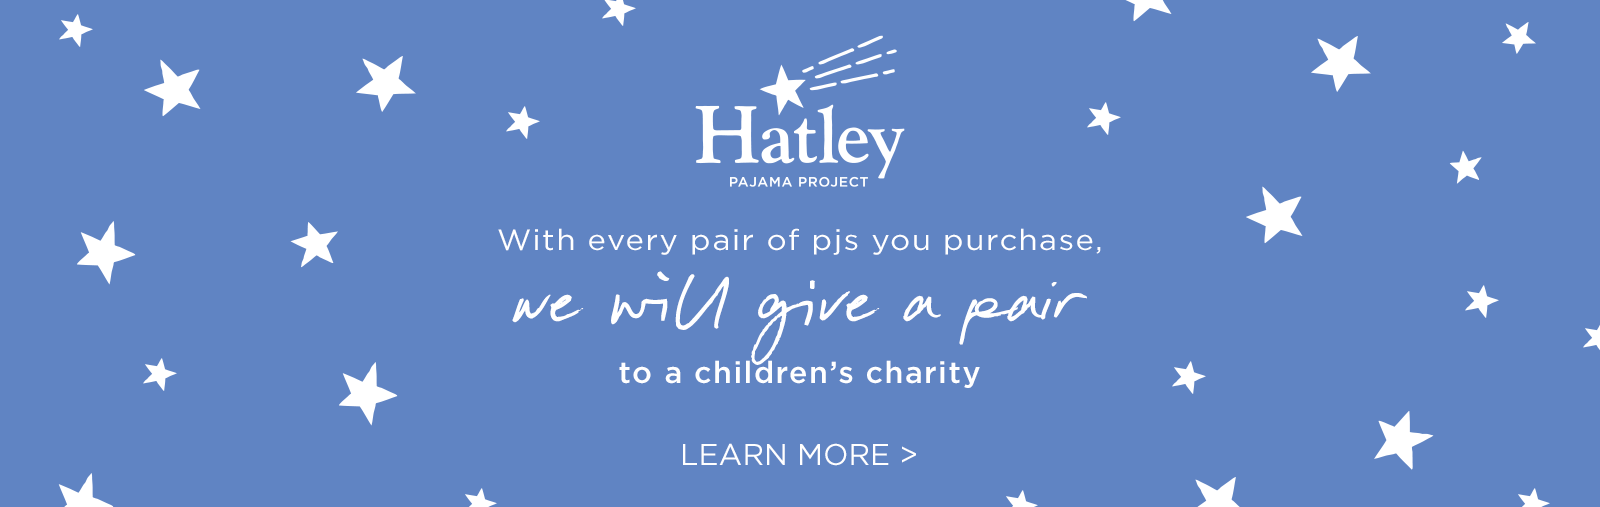 For every pair purchased we will donate one to a children's charity